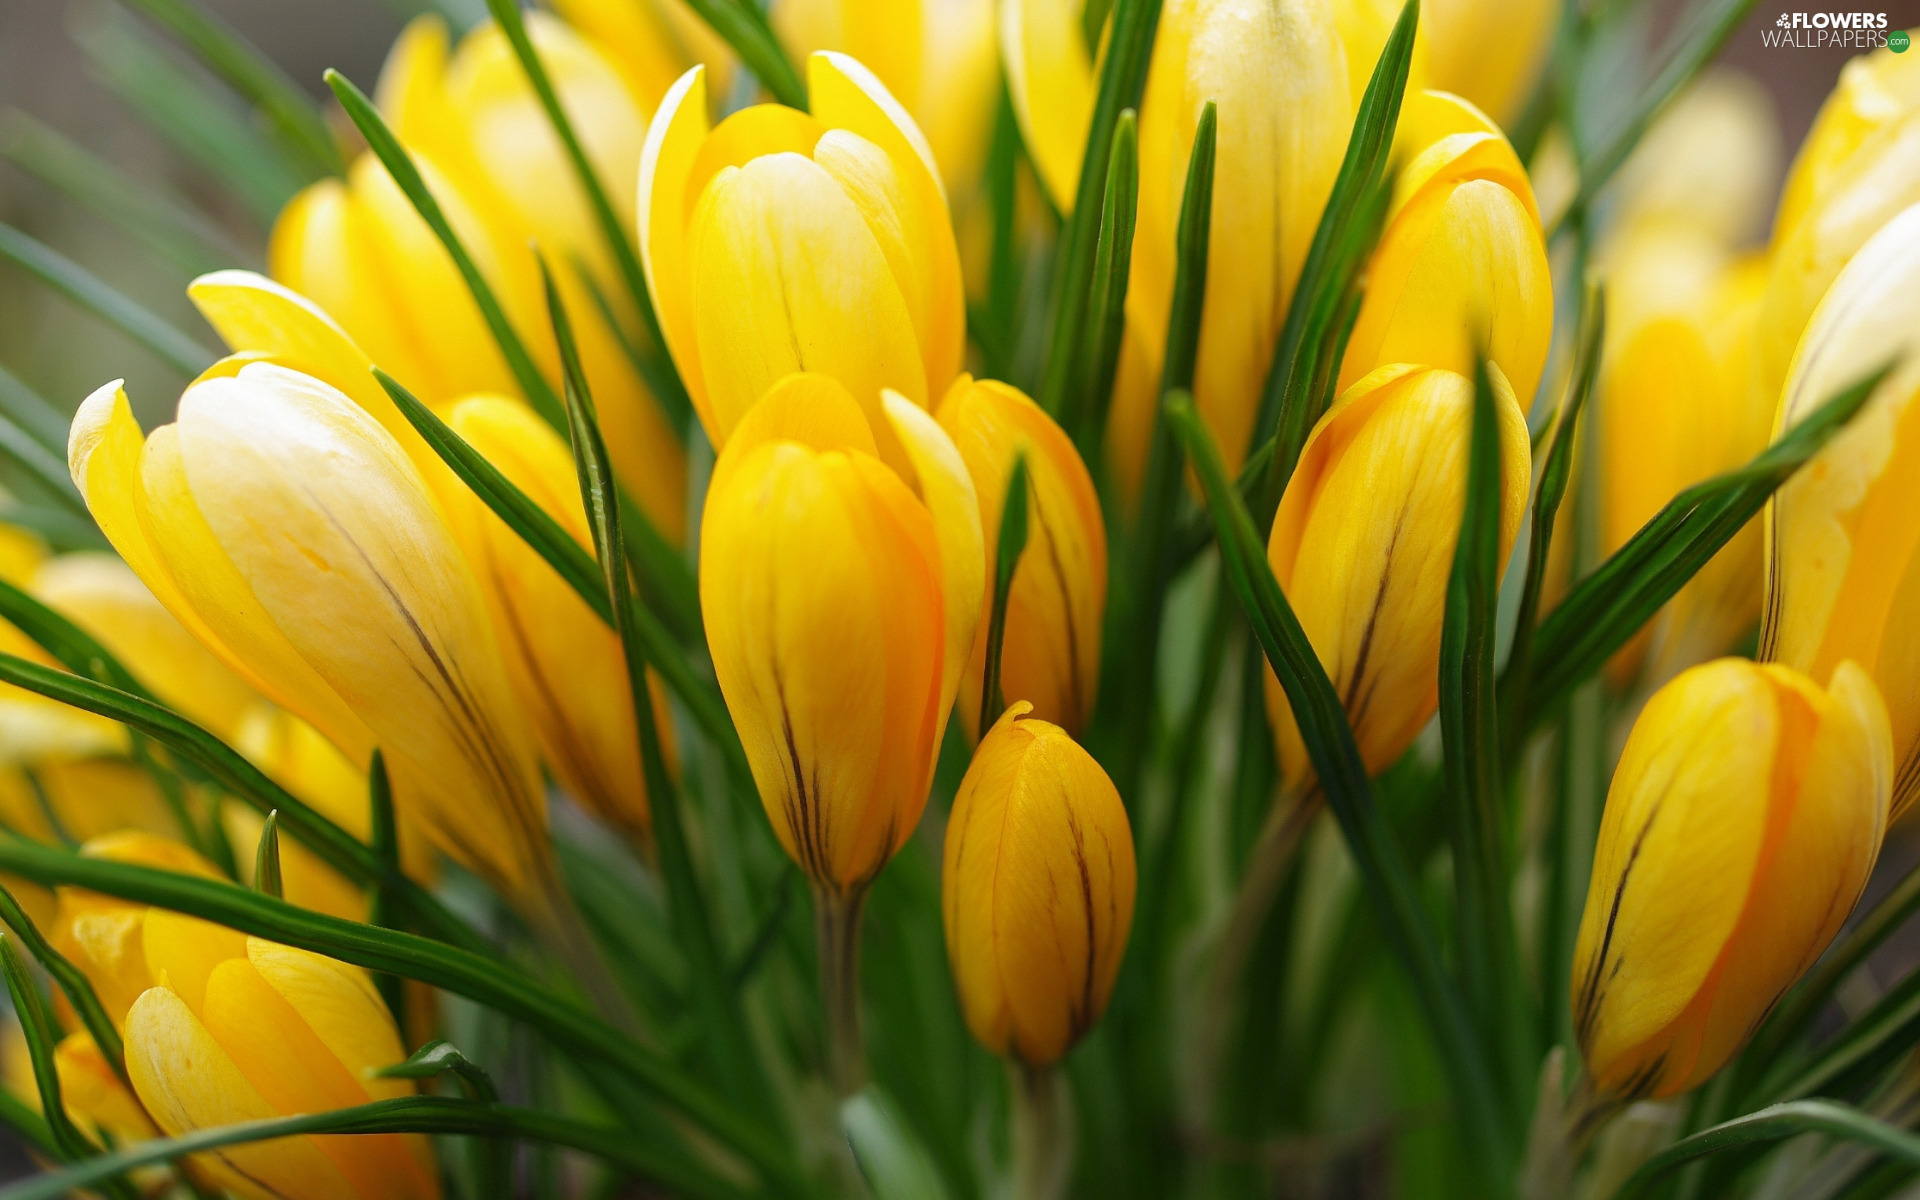 Flowers, crocuses, Buds, Yellow